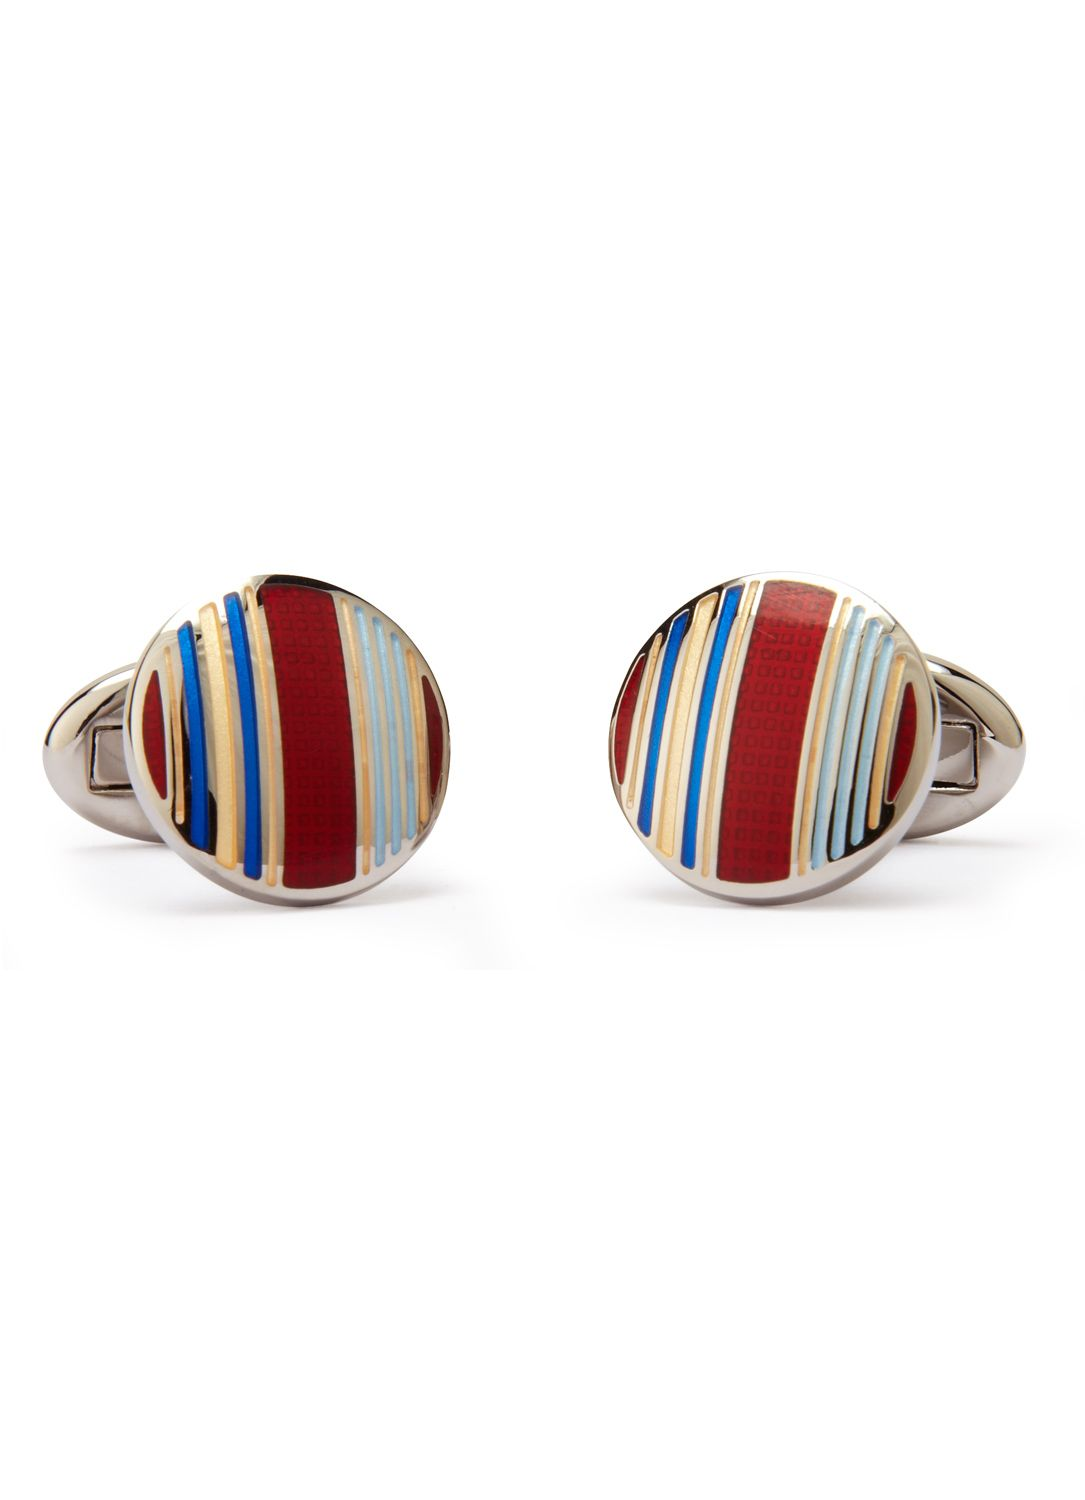 110th Anniversary Blue Red Stripe Circle Cufflinks Austin Reed Red Stripe Cufflinks Austin Reed